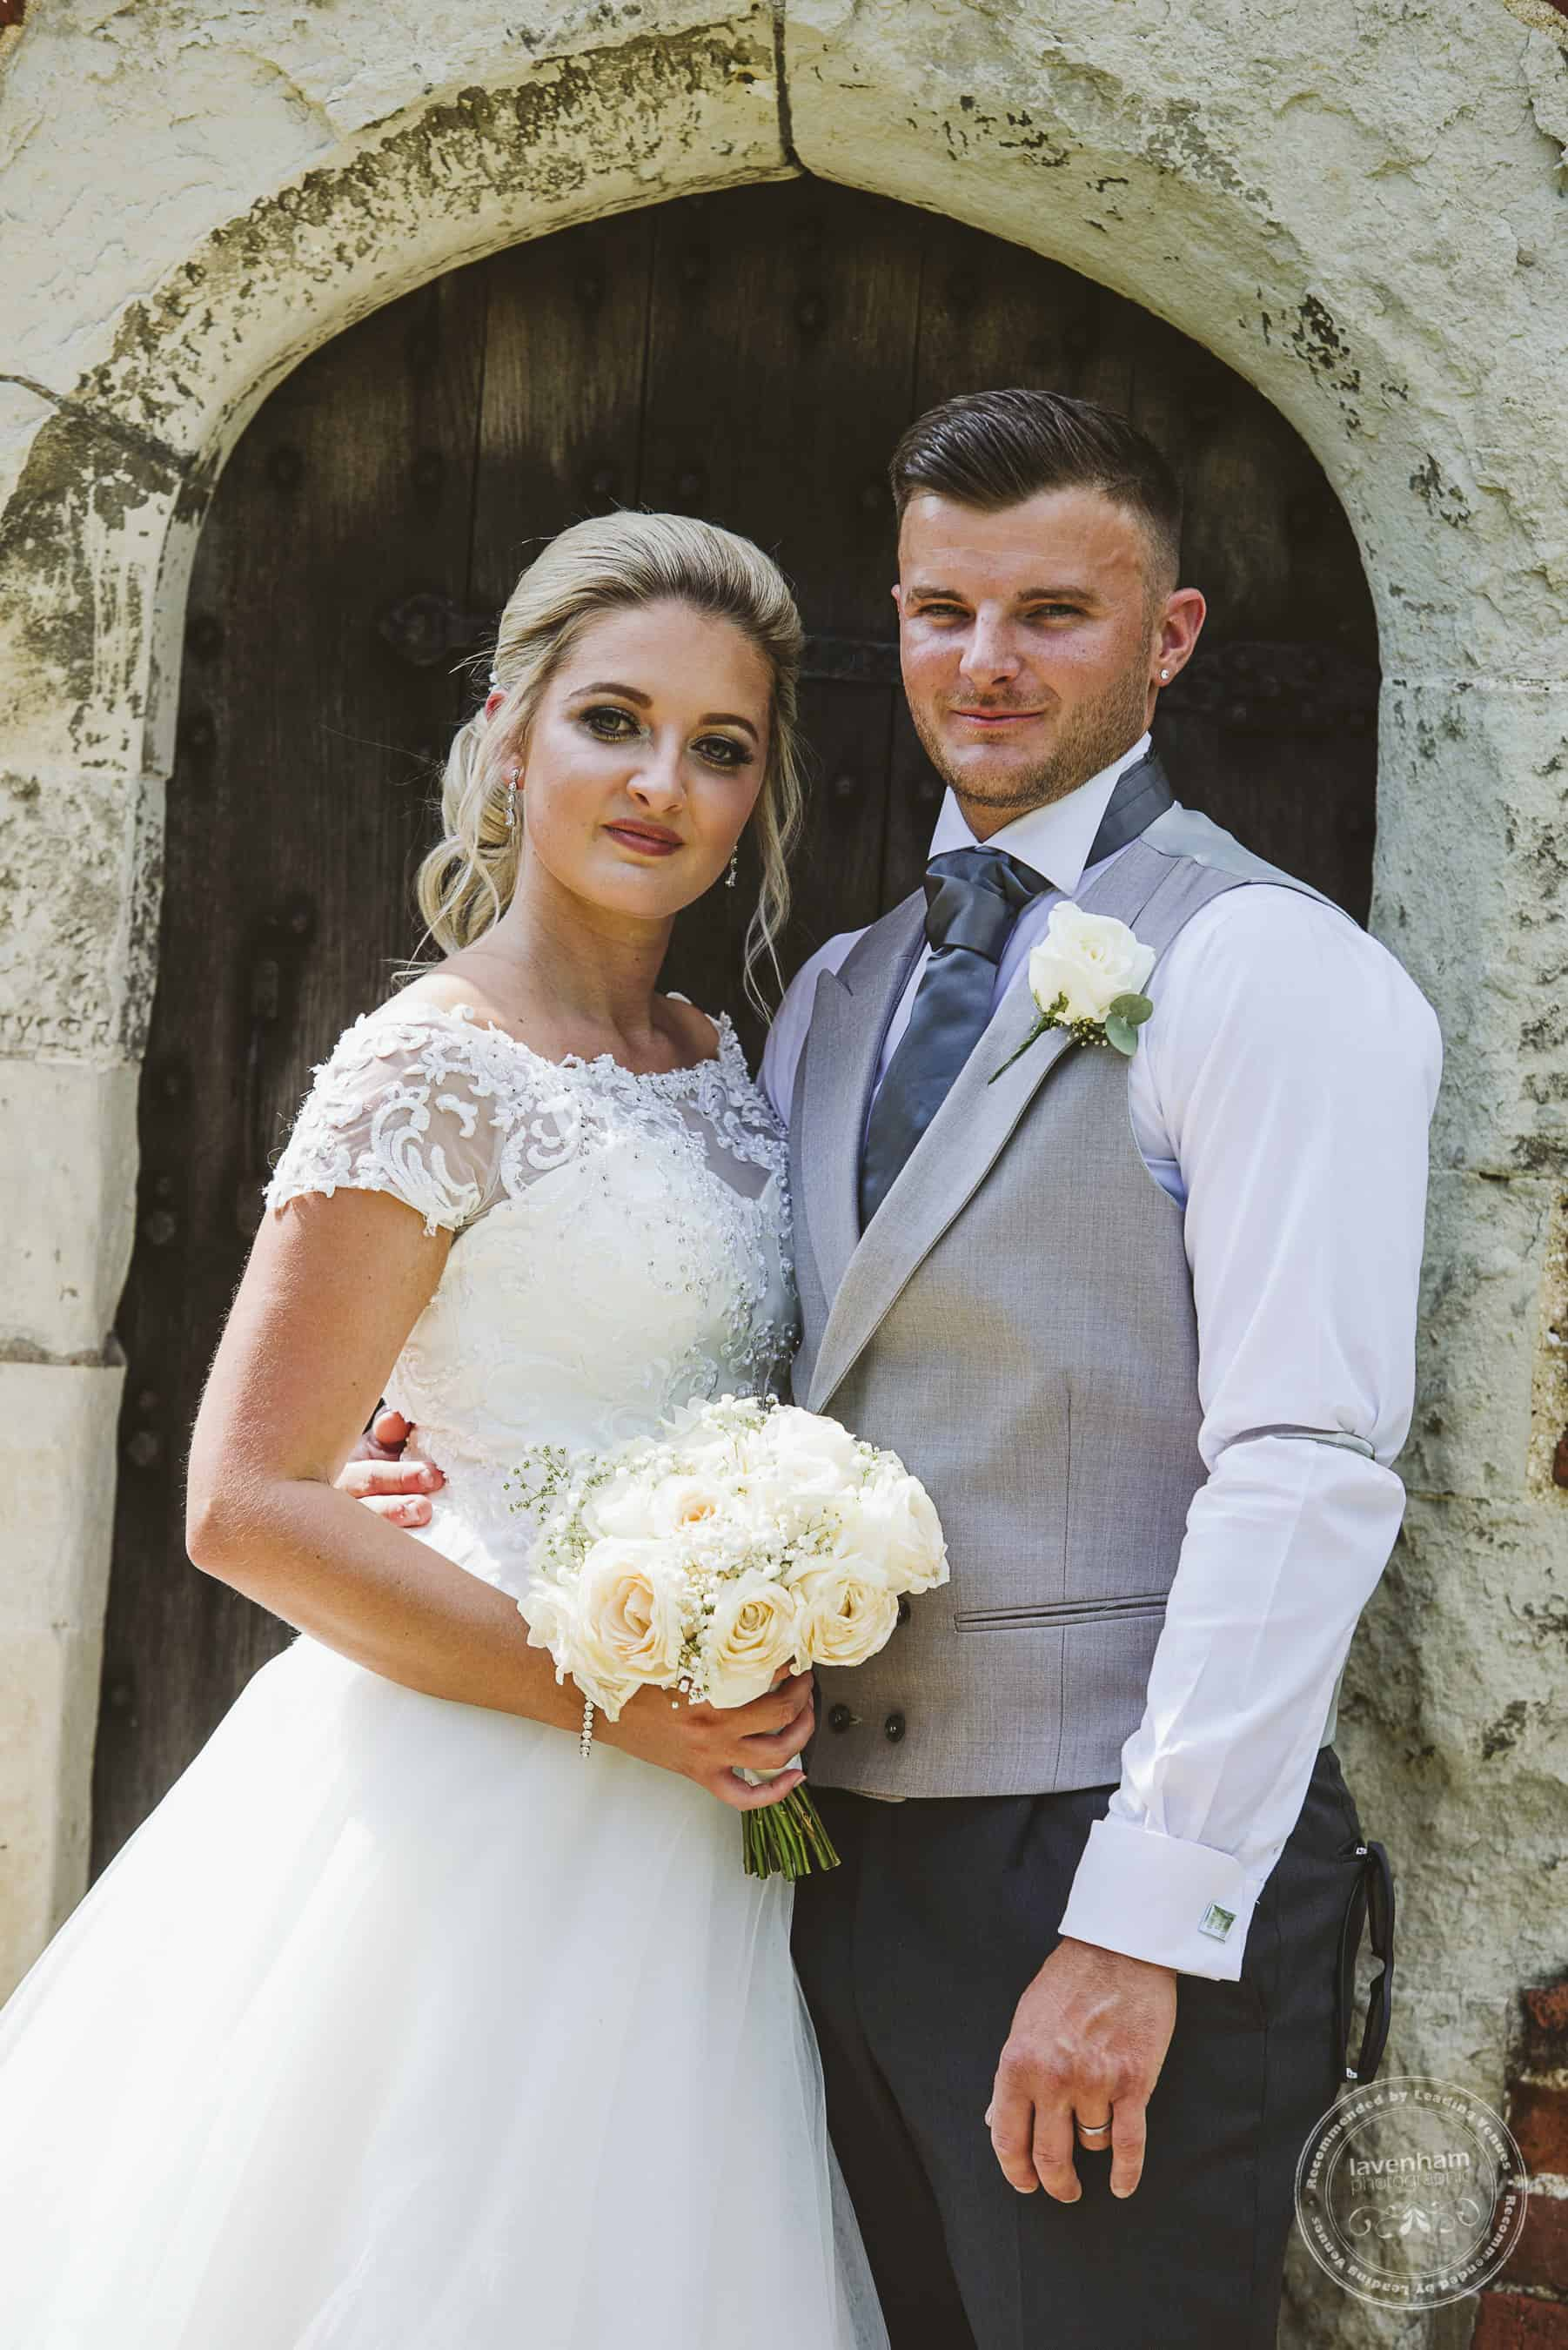 030618 Leez Priory Wedding Photography Lavenham Photographic 071